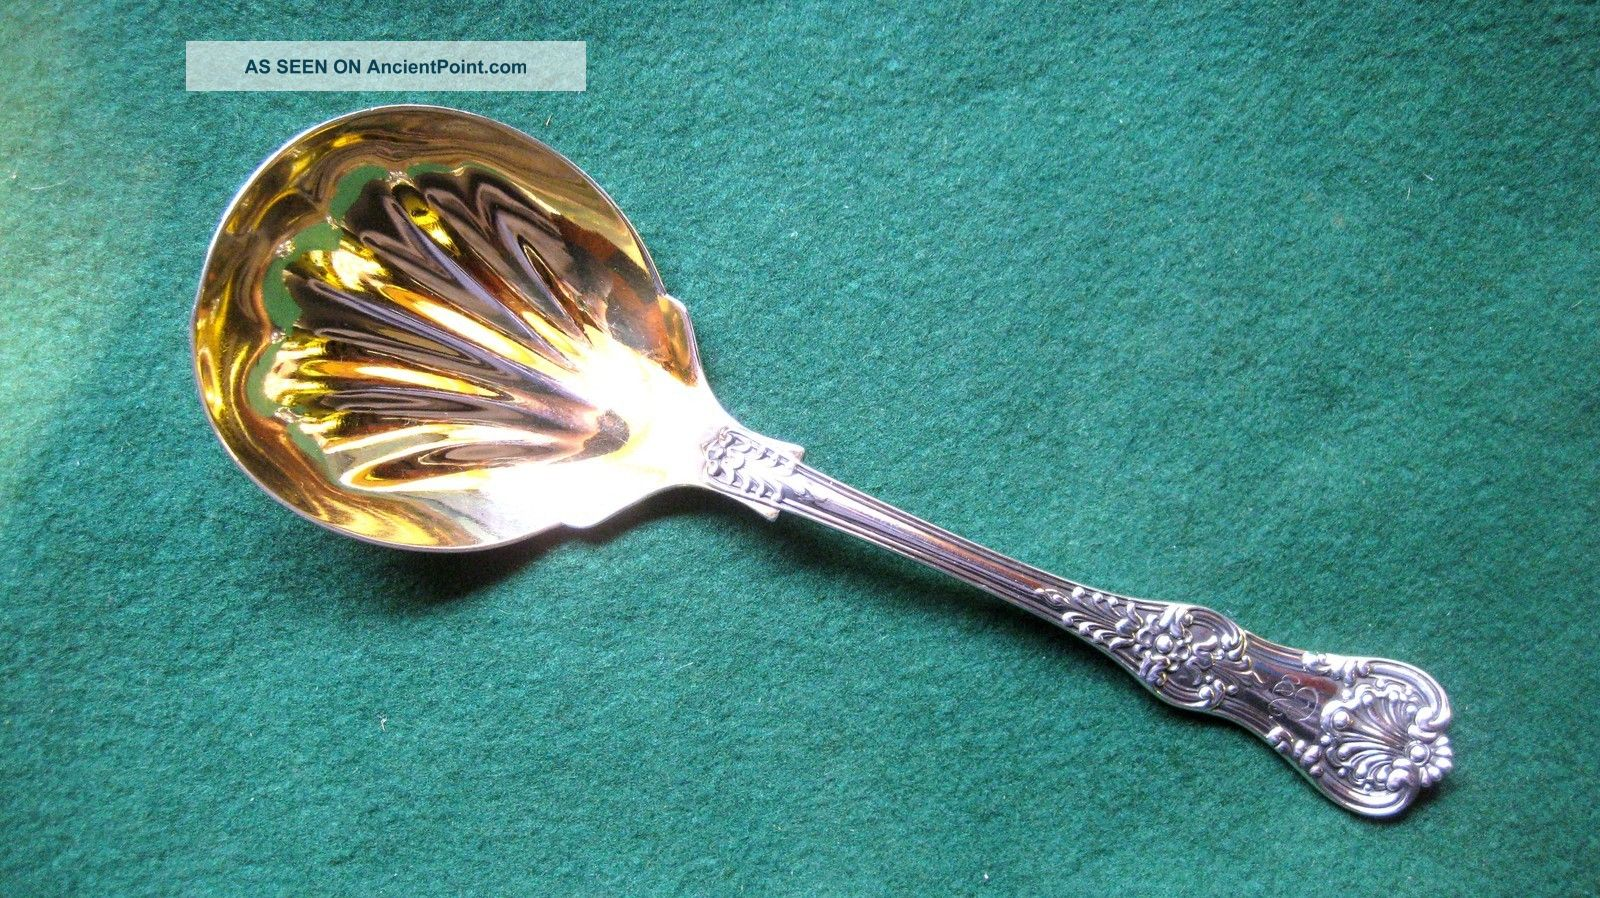 Solid Silver Serving Spoon - - Tiffany - - 19th.  Century - - 1885 - - Kings Pattern Other photo